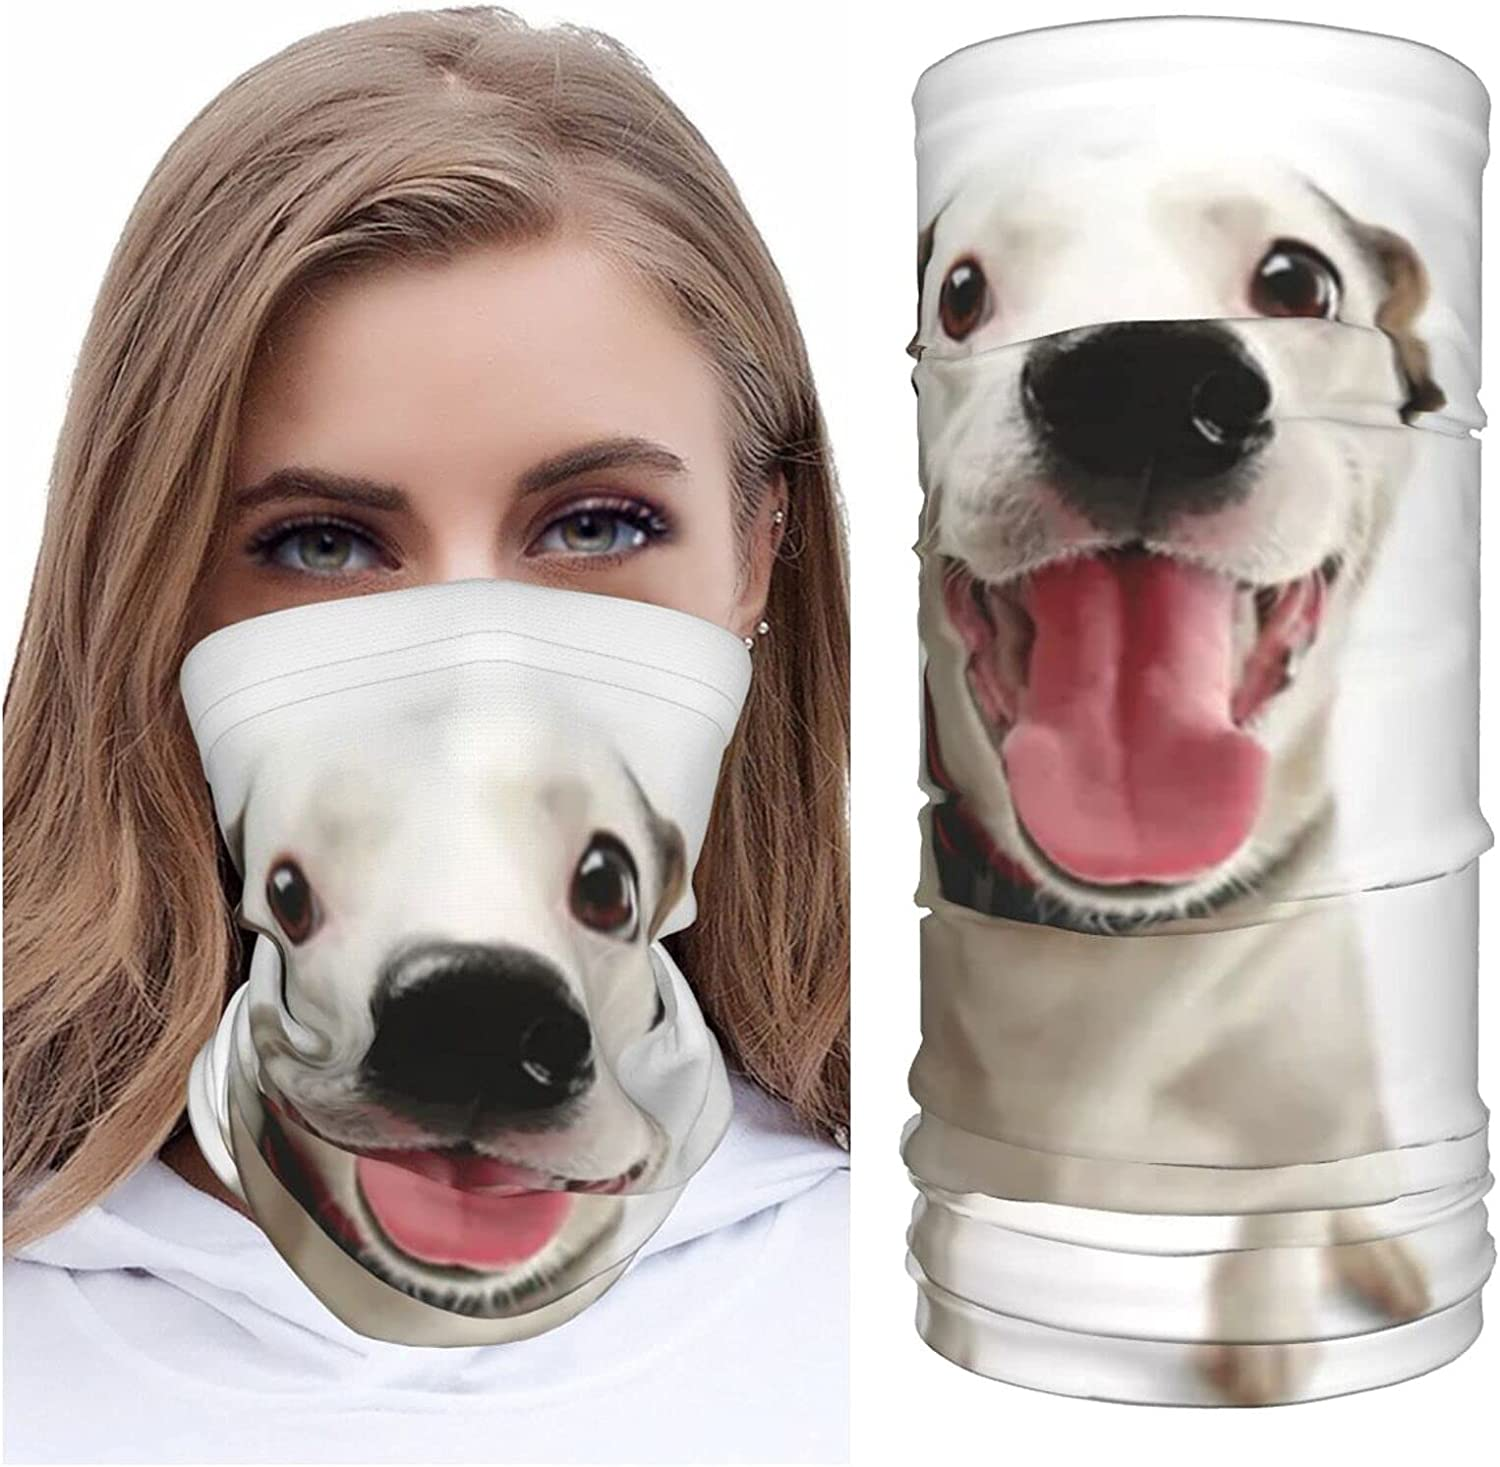 Funny Andalusian Ratonnaro Dog Summer Ice Silk Breathable Face Mask Neck Gaiter Scarf Bandanas for Fishing,Hiking,Running,Motorcycle and Daily Wear